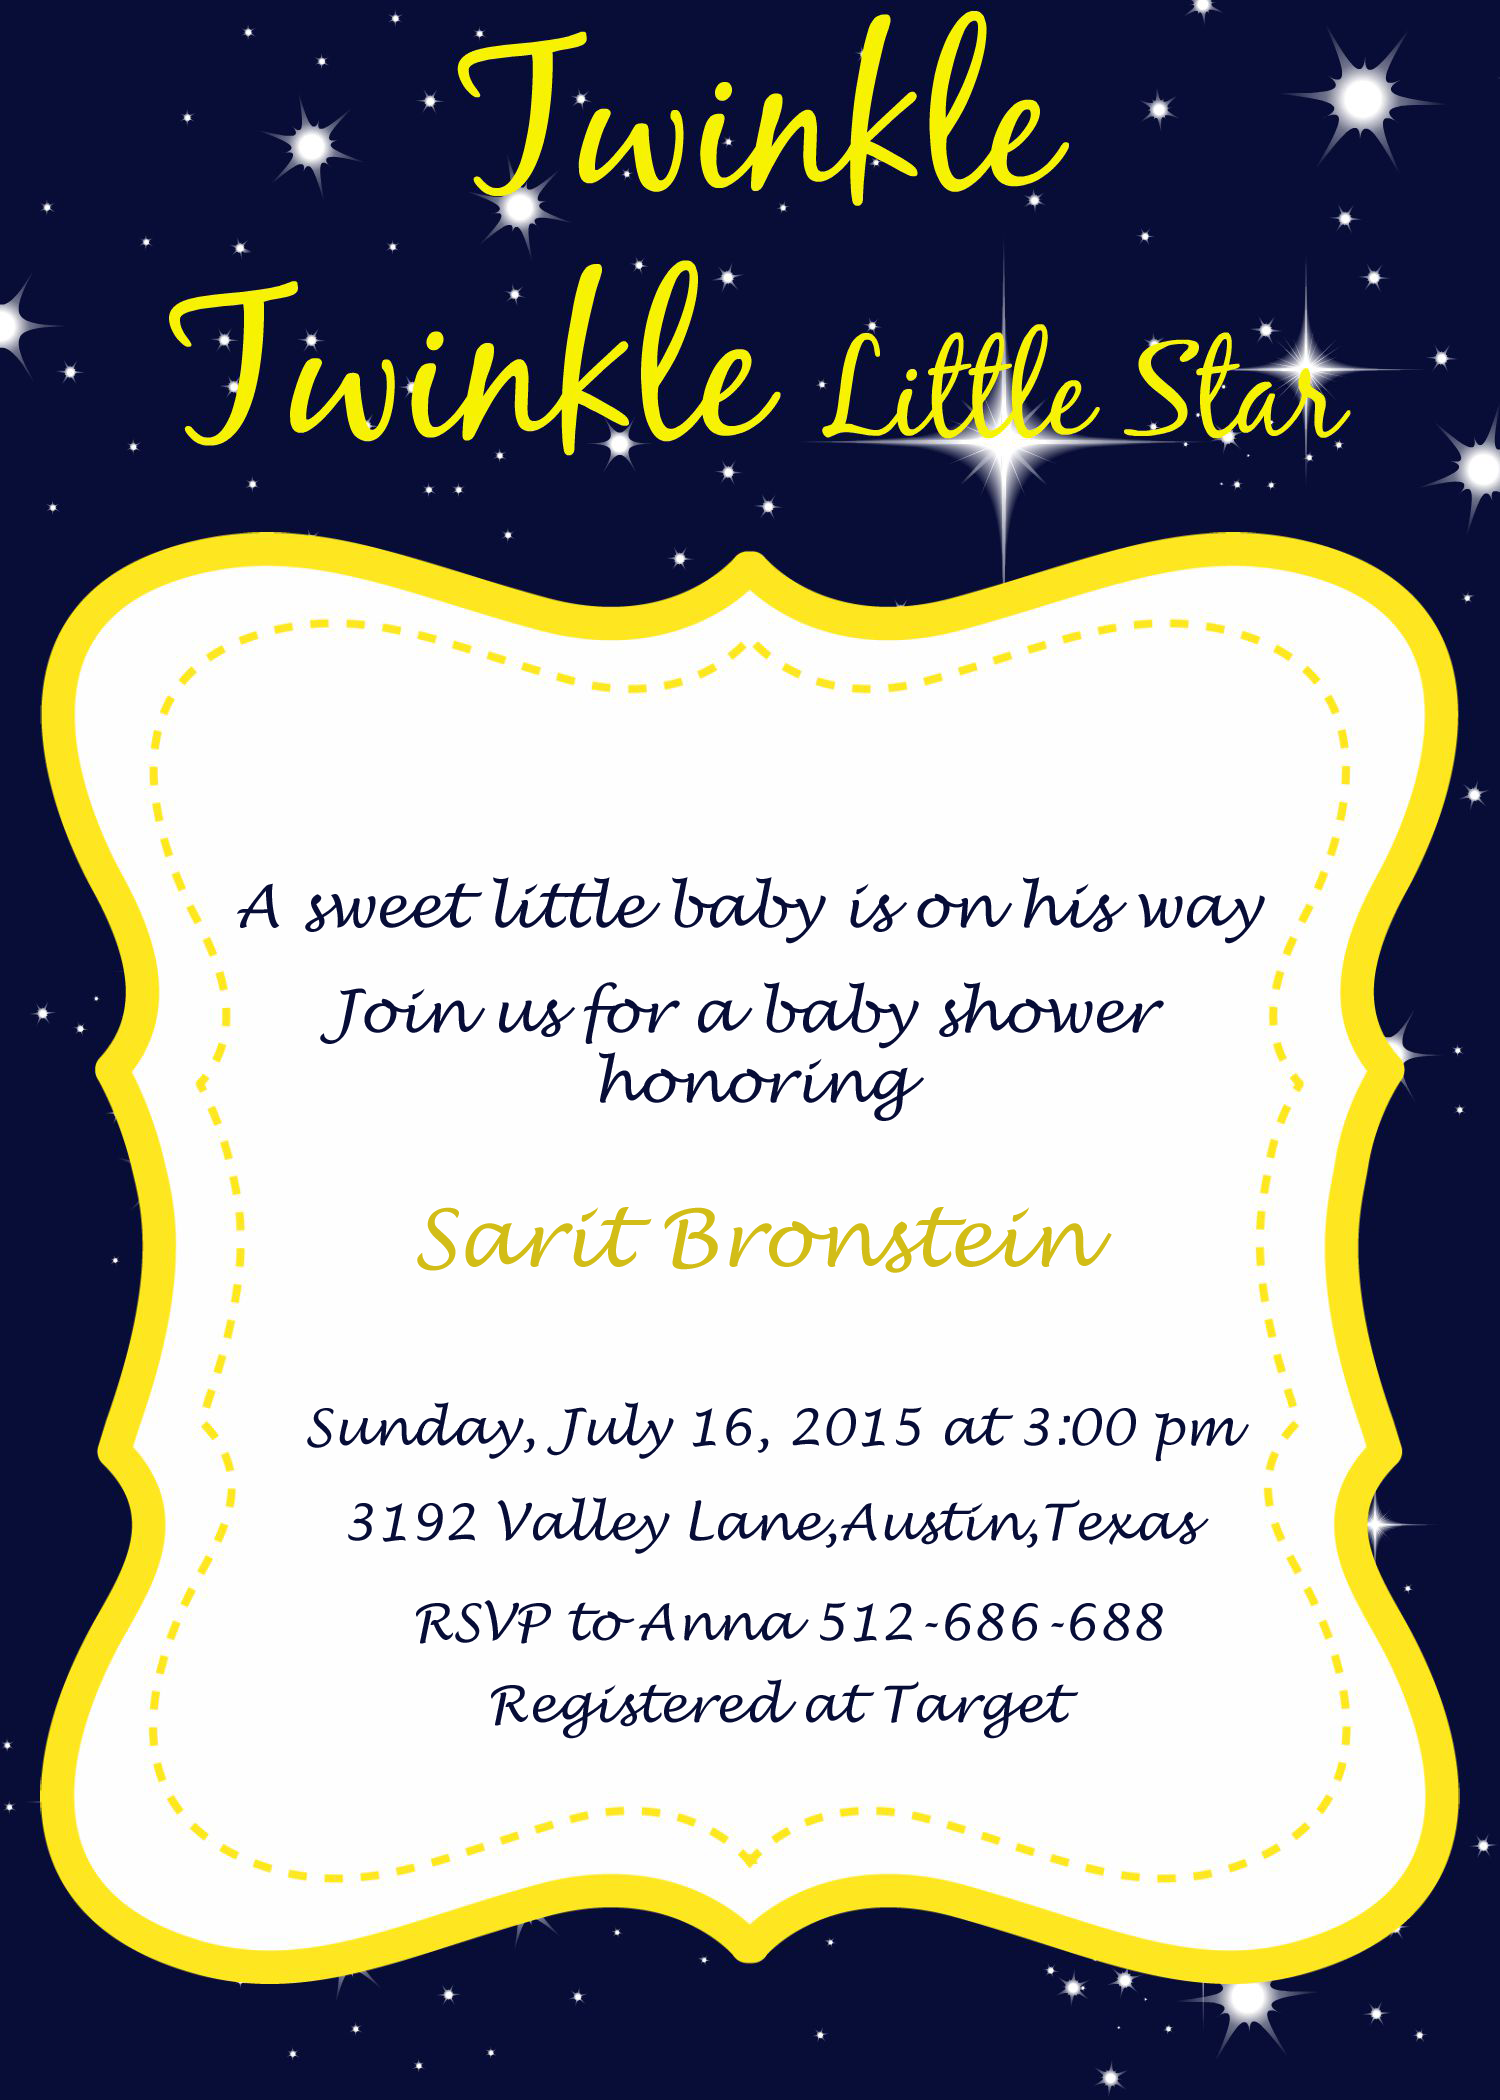 Personalized Twinkle Twinkle Baby Shower Invitation by 2rabbitsprintenjoy